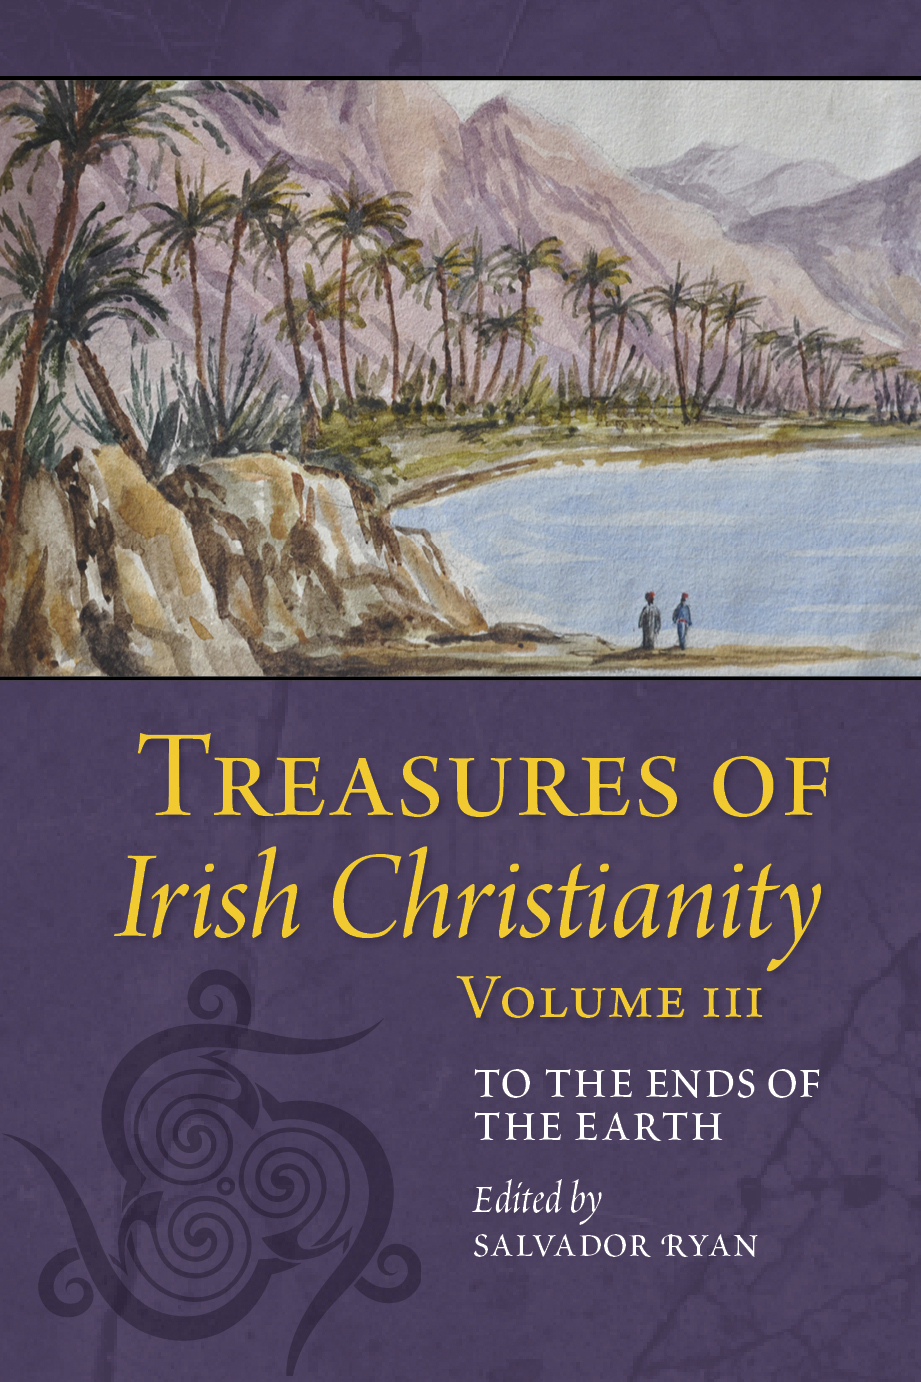 Treasures of Irish Christianity Volume III: To the Ends of the Earth